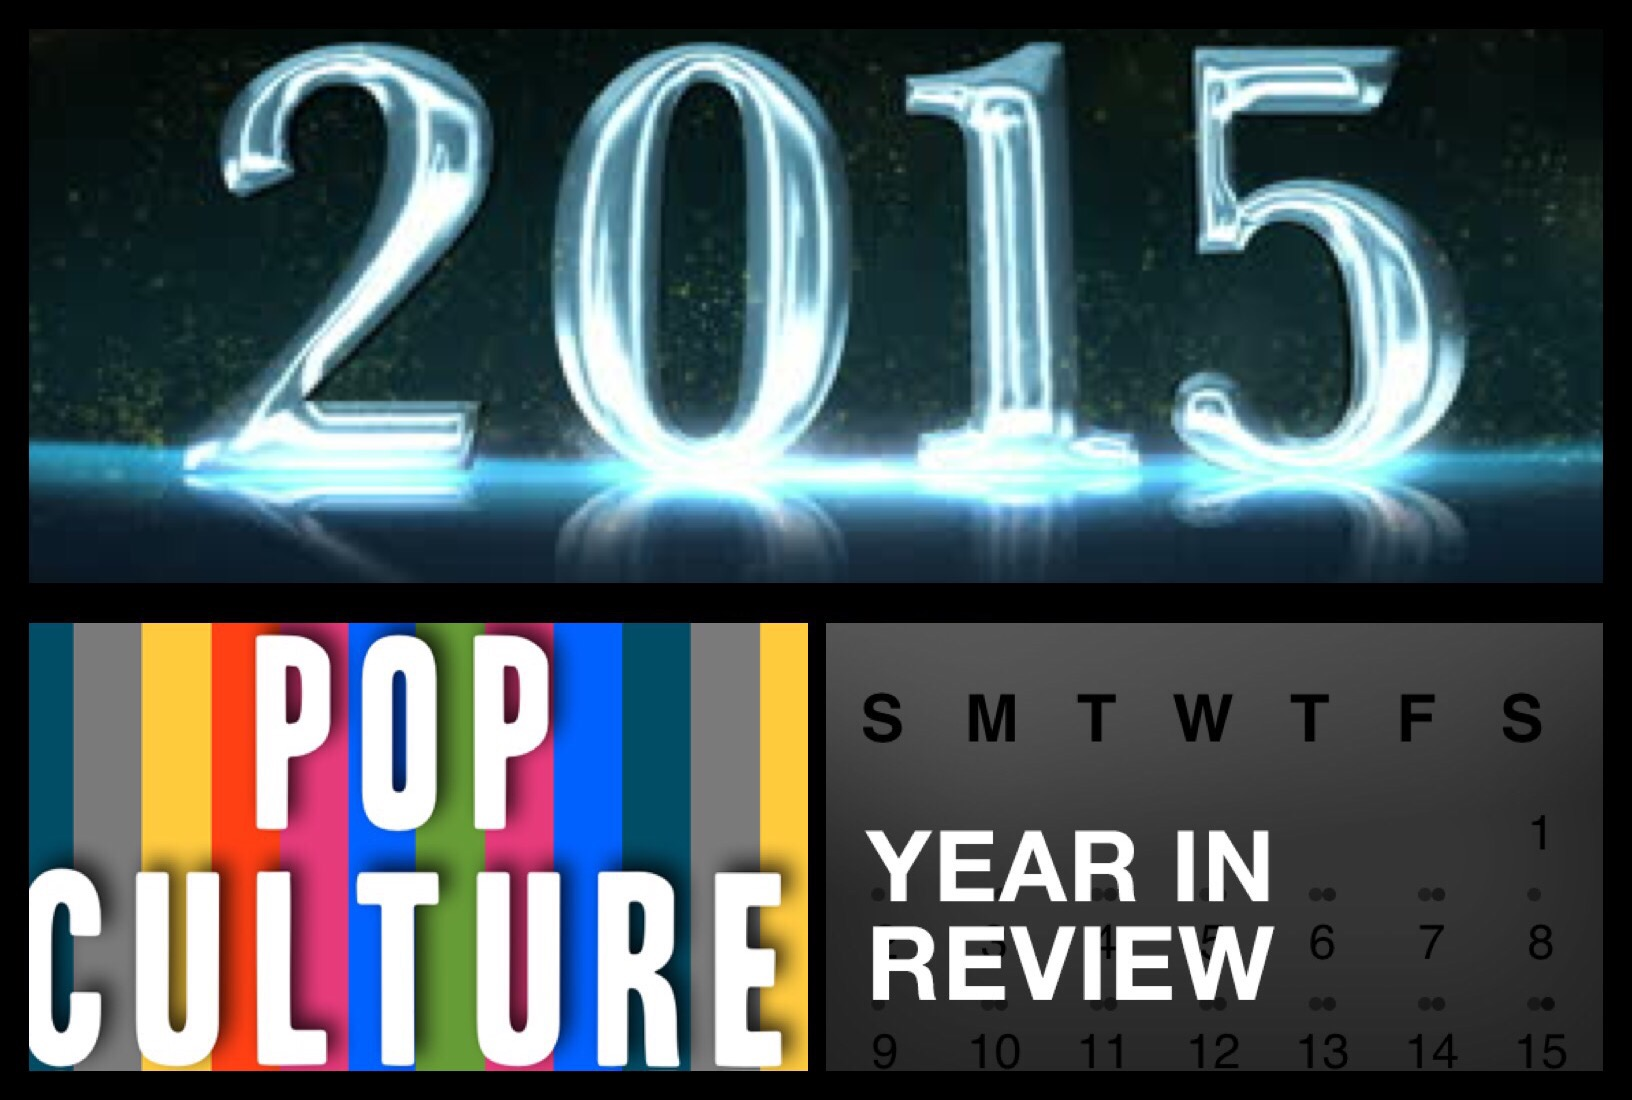 2015 pop culture year in review